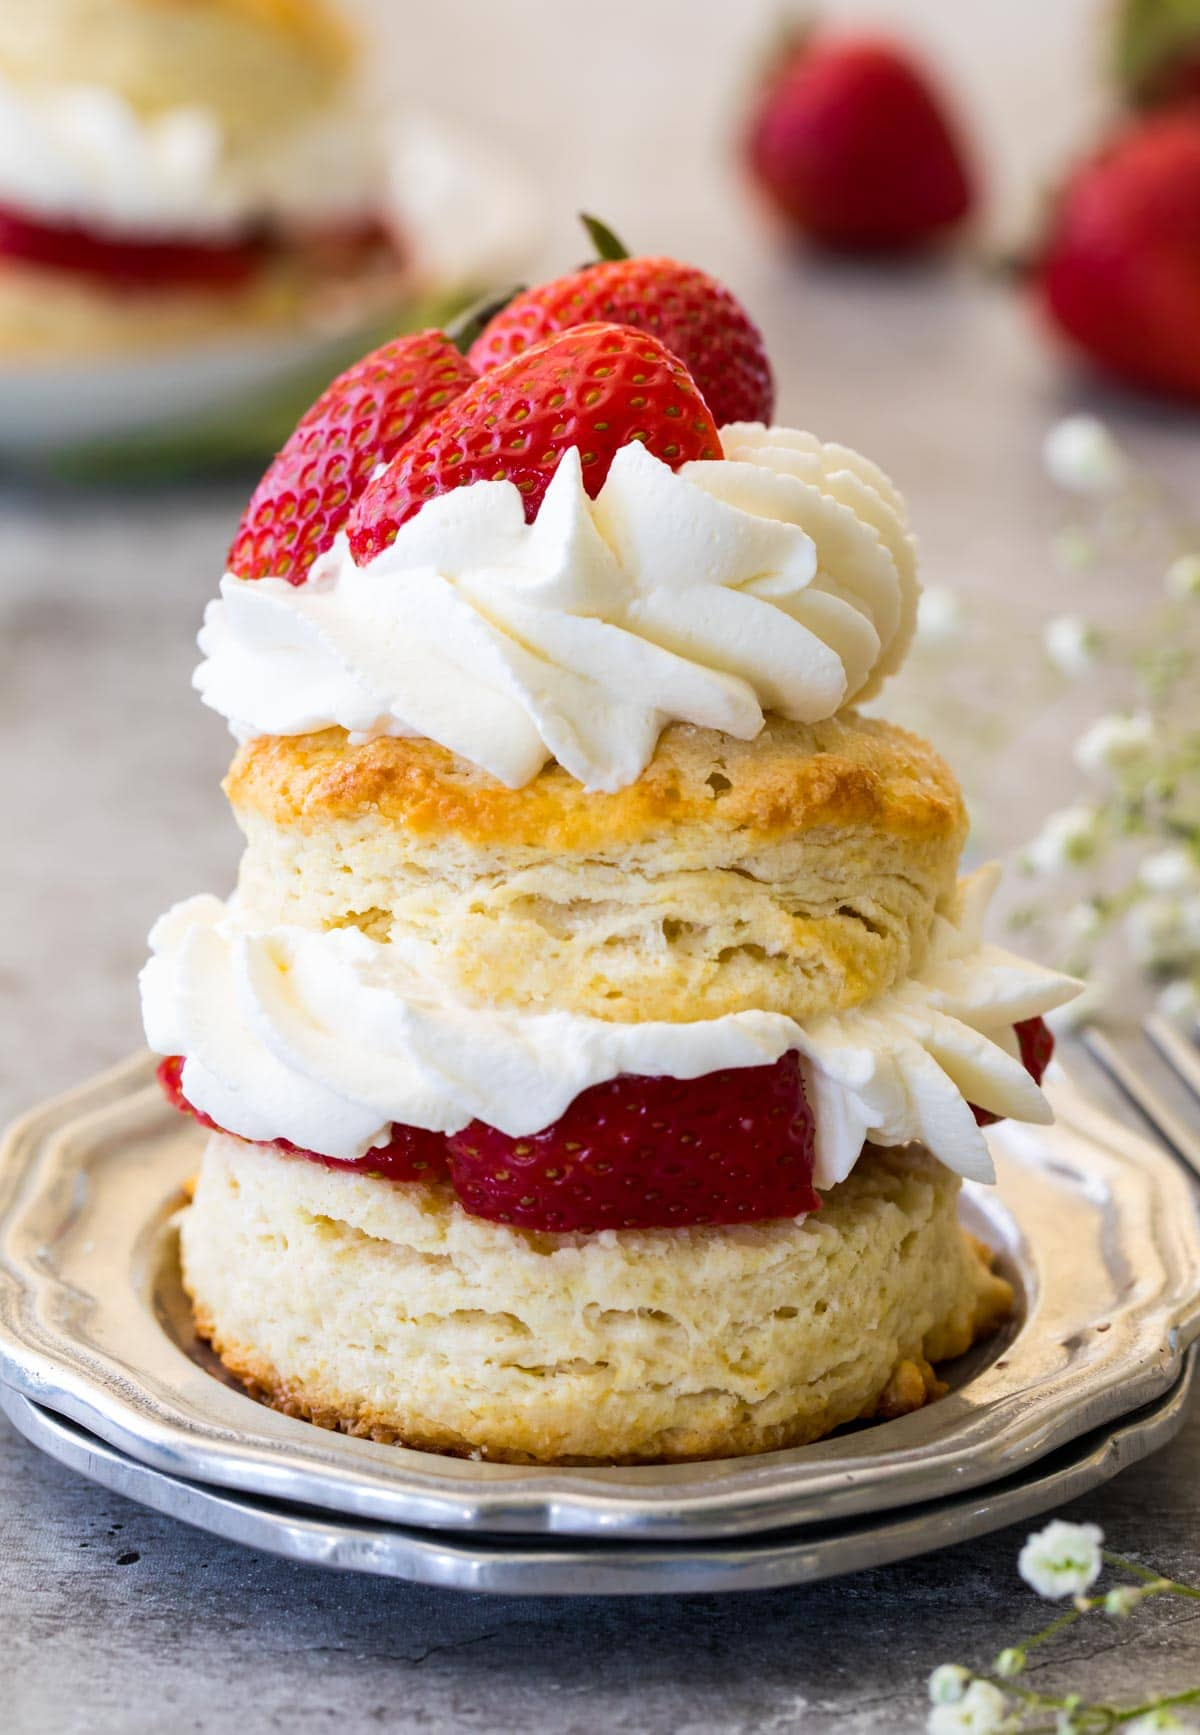 shortcake stacked with whipped cream and strawberries on silver plate